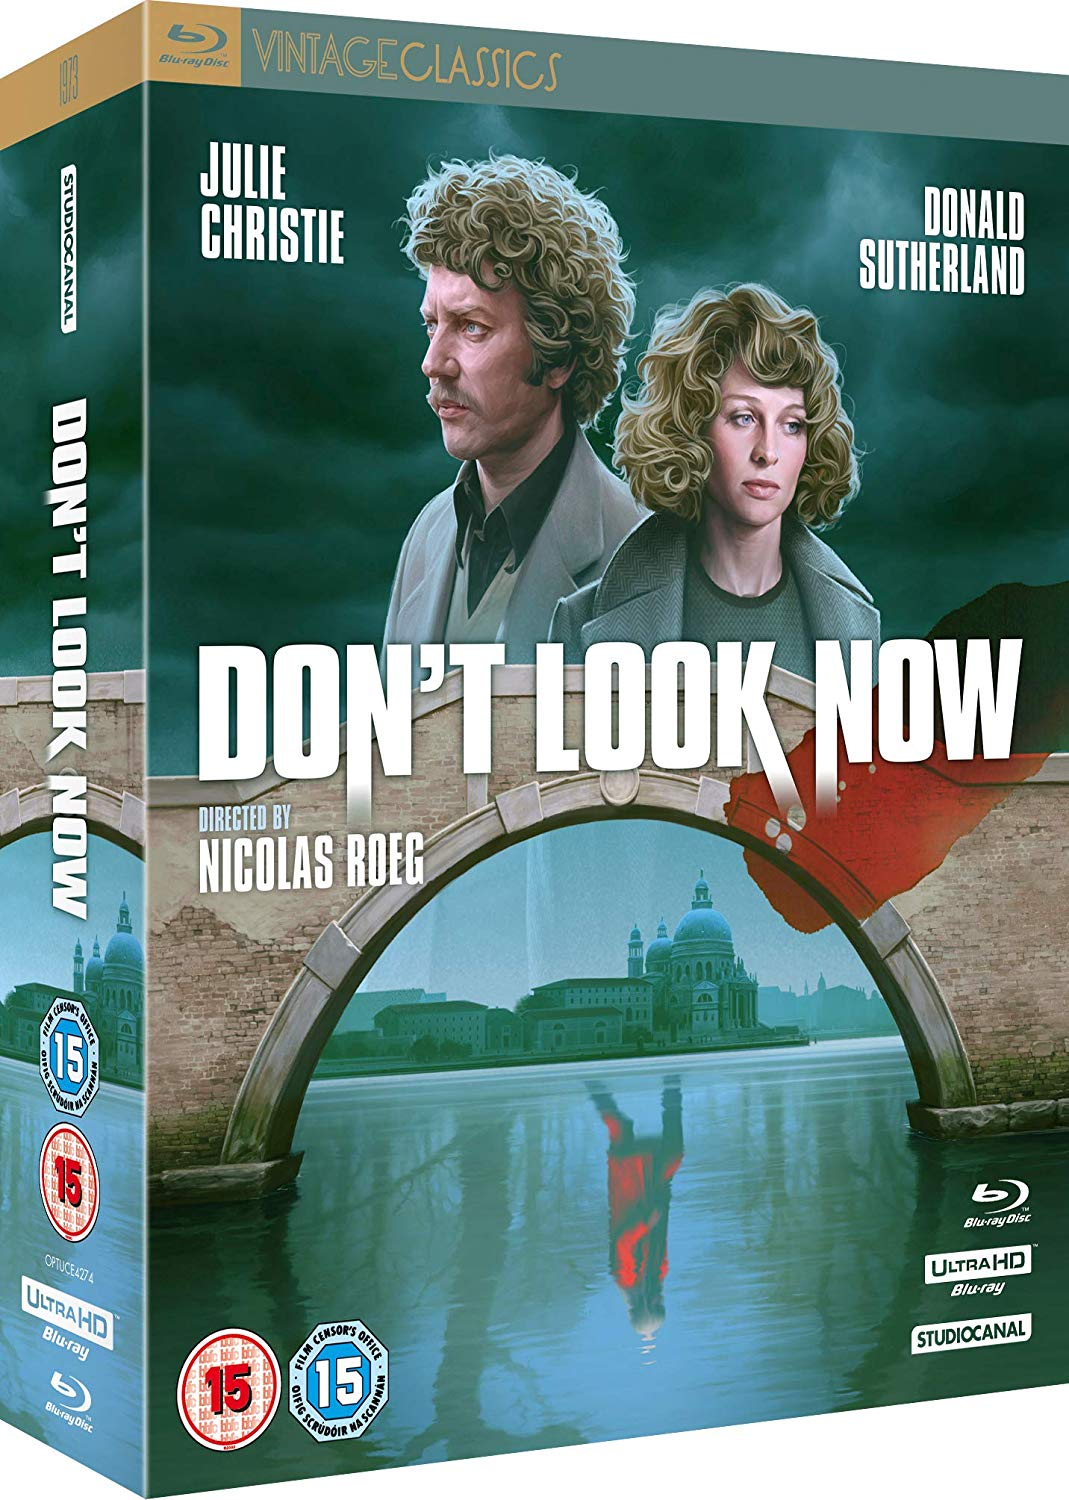 Don't Look Now 4K UK Blu-Ray